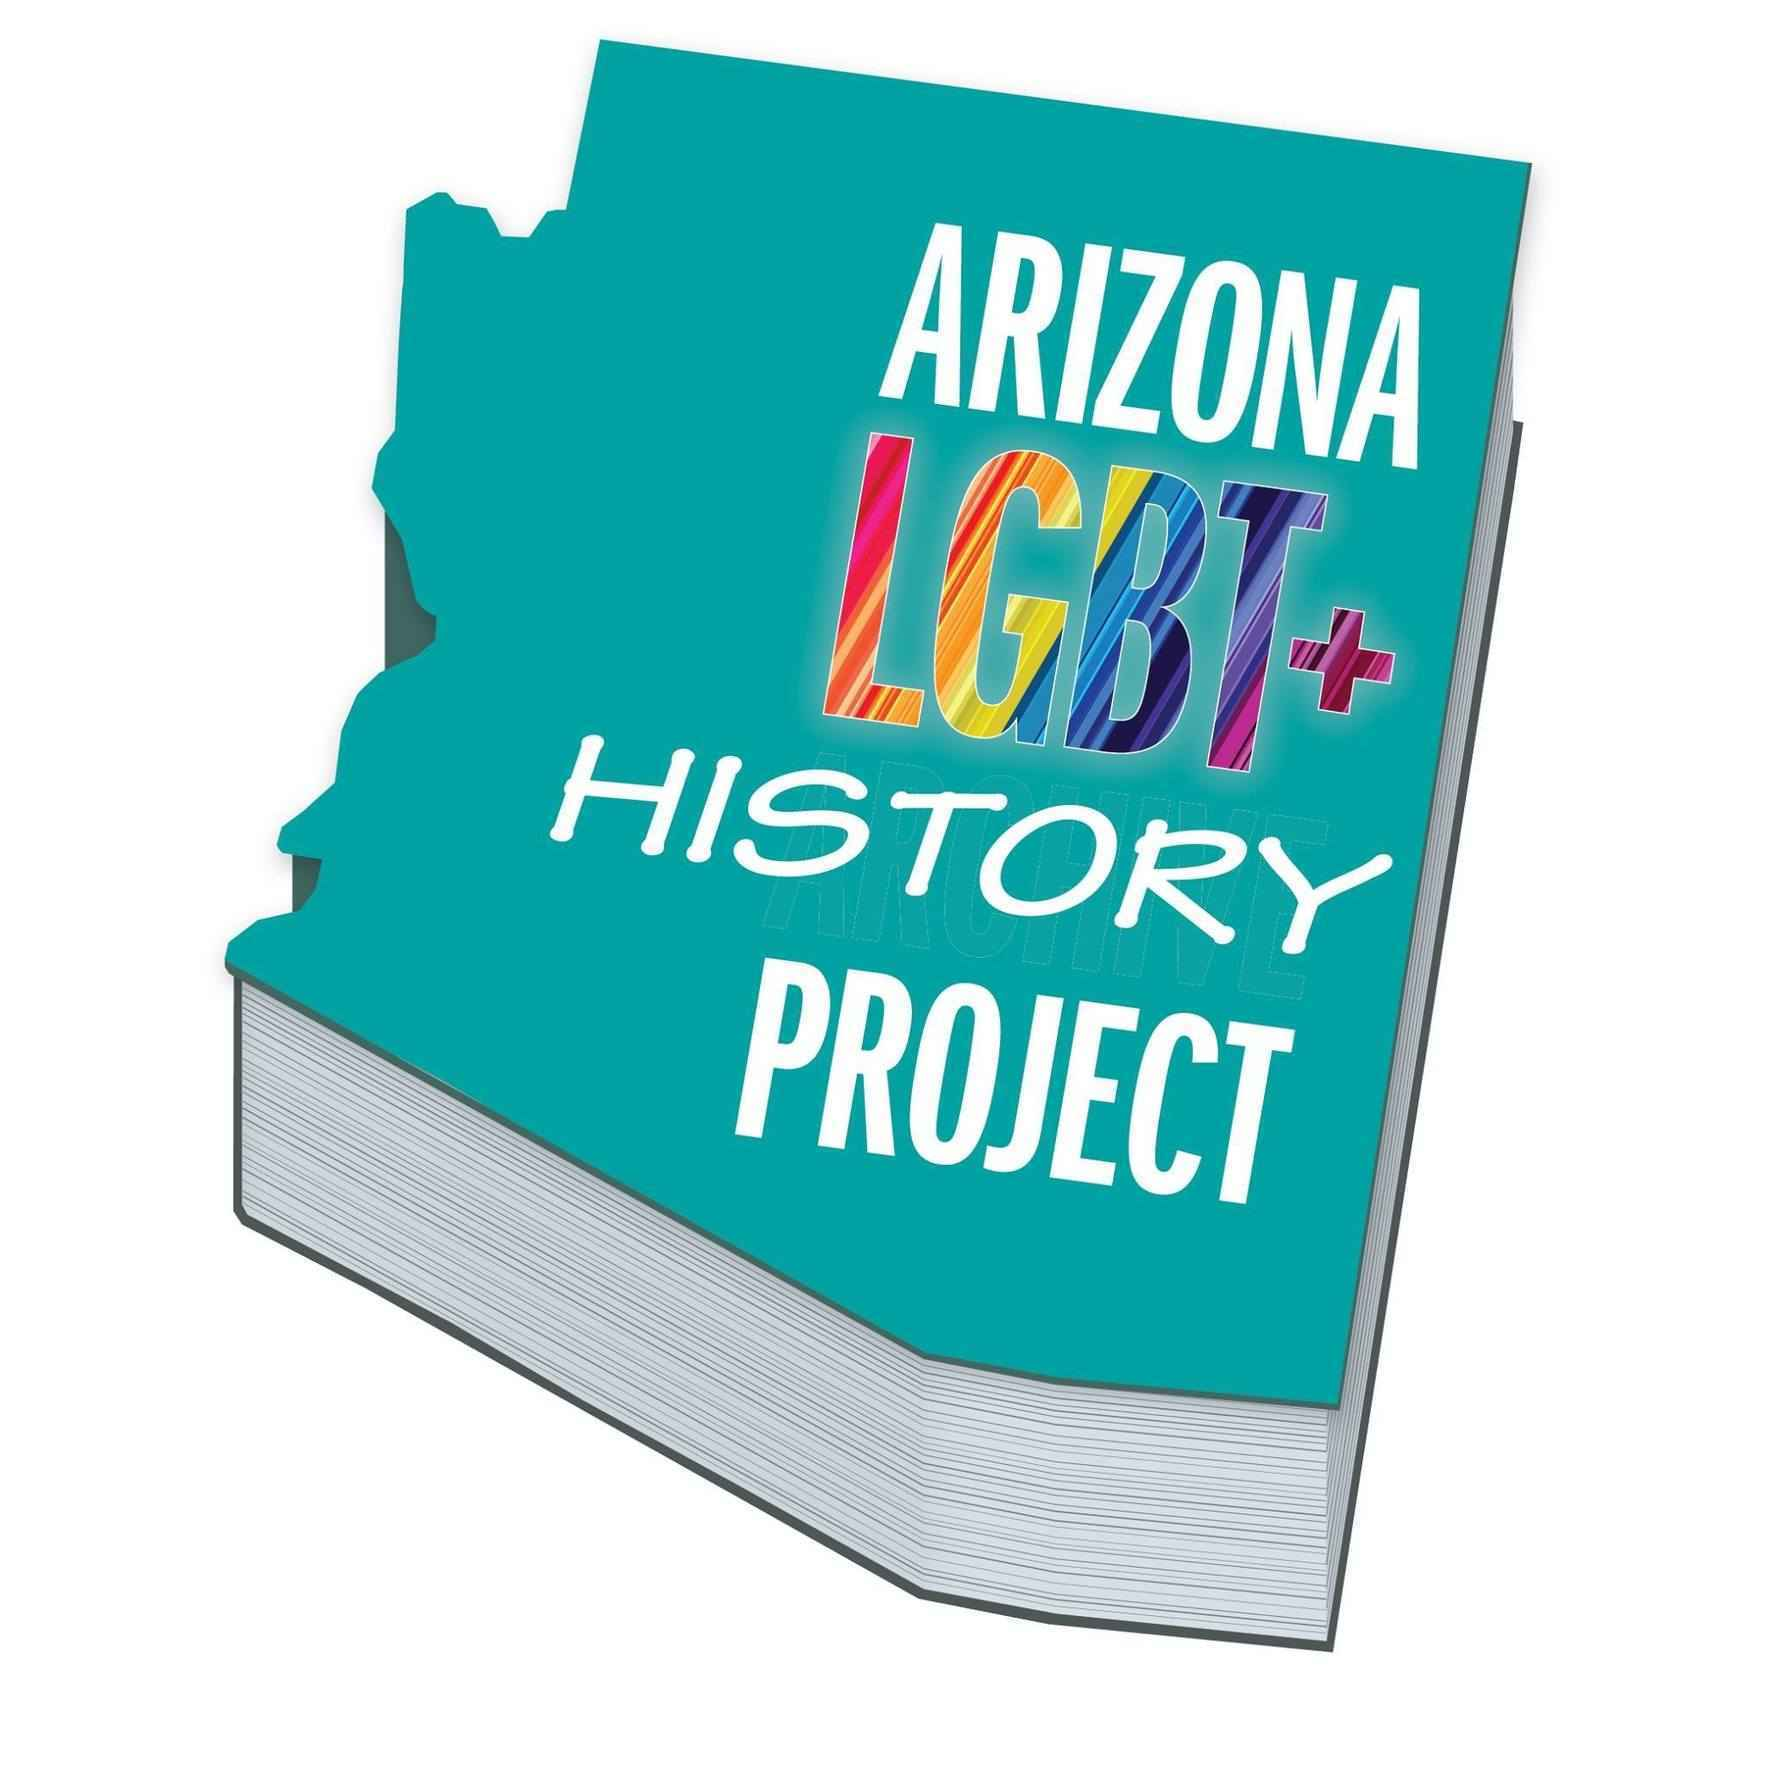 The Arizona LGBT+ History Project promotes and facilitates the protection, preservation, and access of materials that chronicles the experience, culture, and history of Lesbian, Gay, Bisexual, Transgender community in Arizona. image